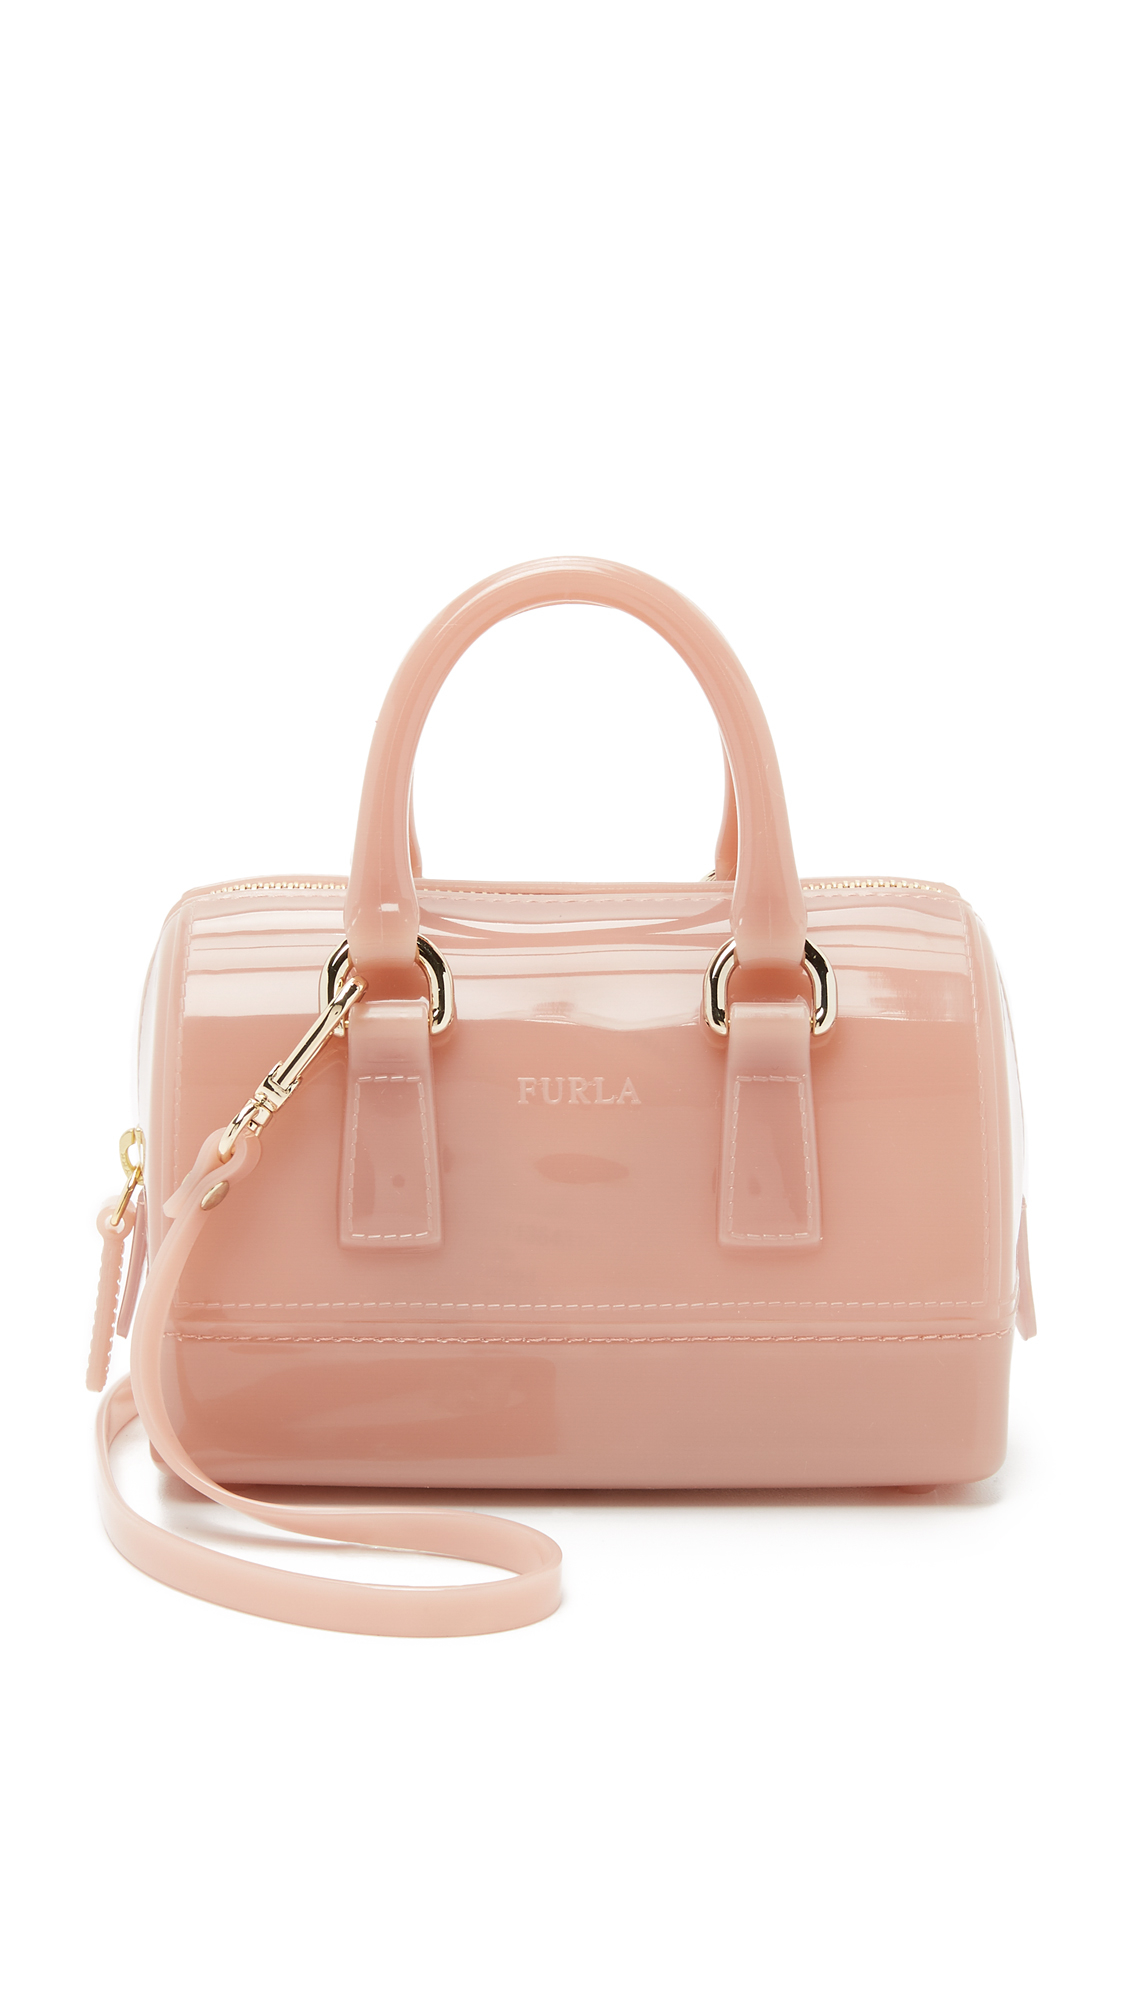 Candy Furla bags pictures photo